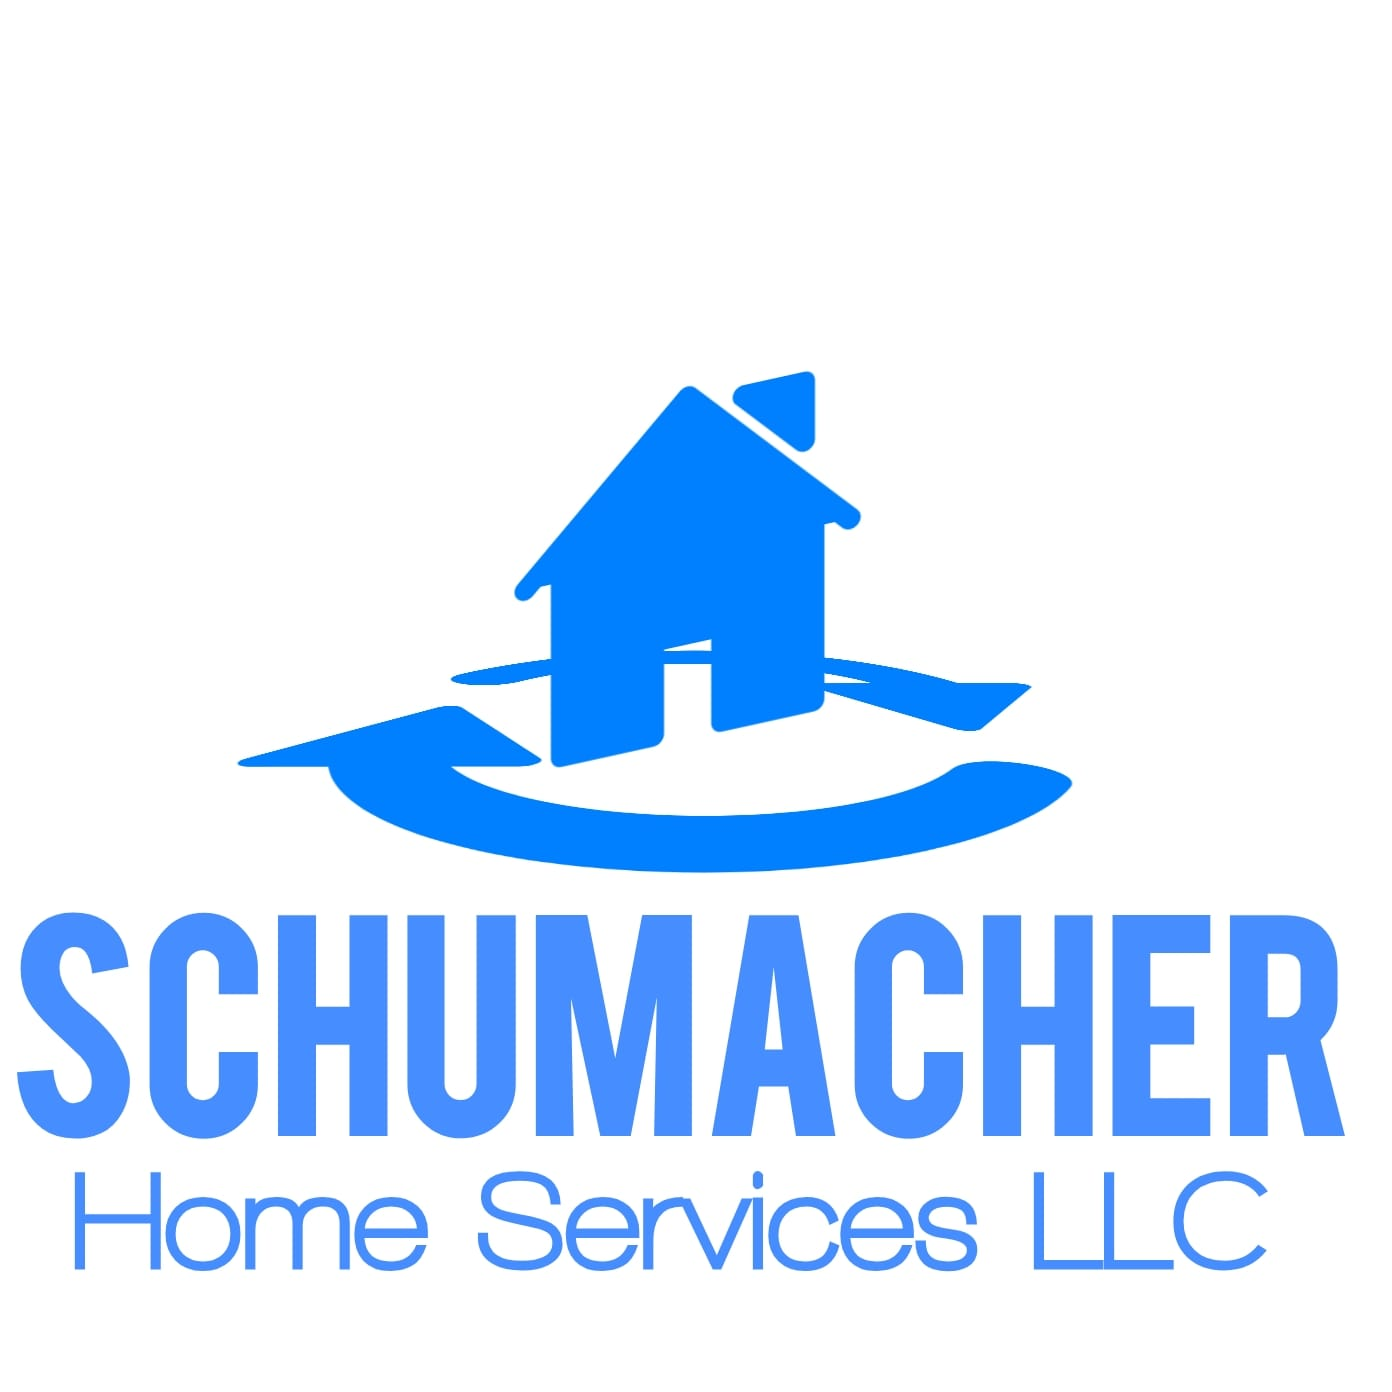 Schumacher Home Services LLC